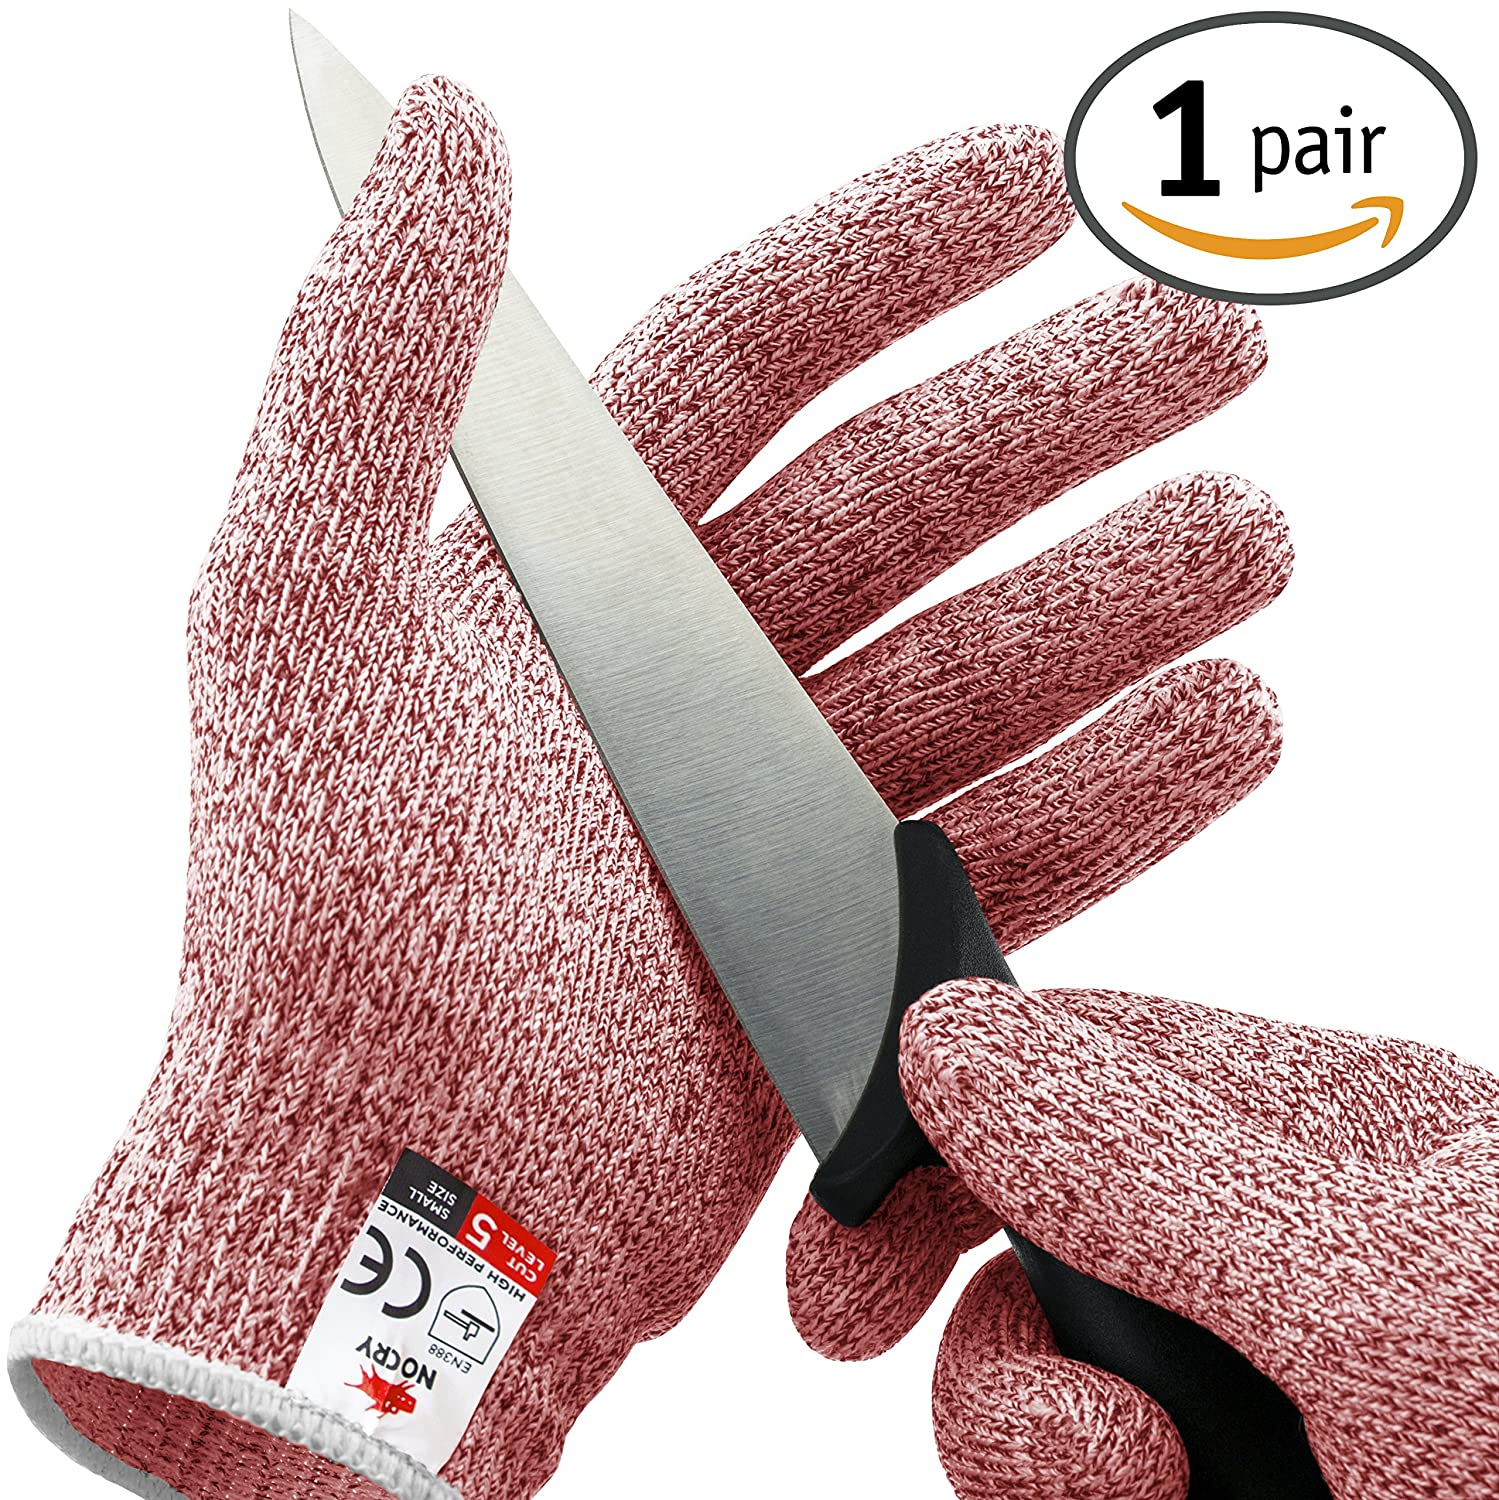 NoCry Cut Resistant Gloves – 高パフォーマンスレベル5保護、食品グレード。無料電子書籍Included 。 S レッド B06X3ZZXTF S レッド